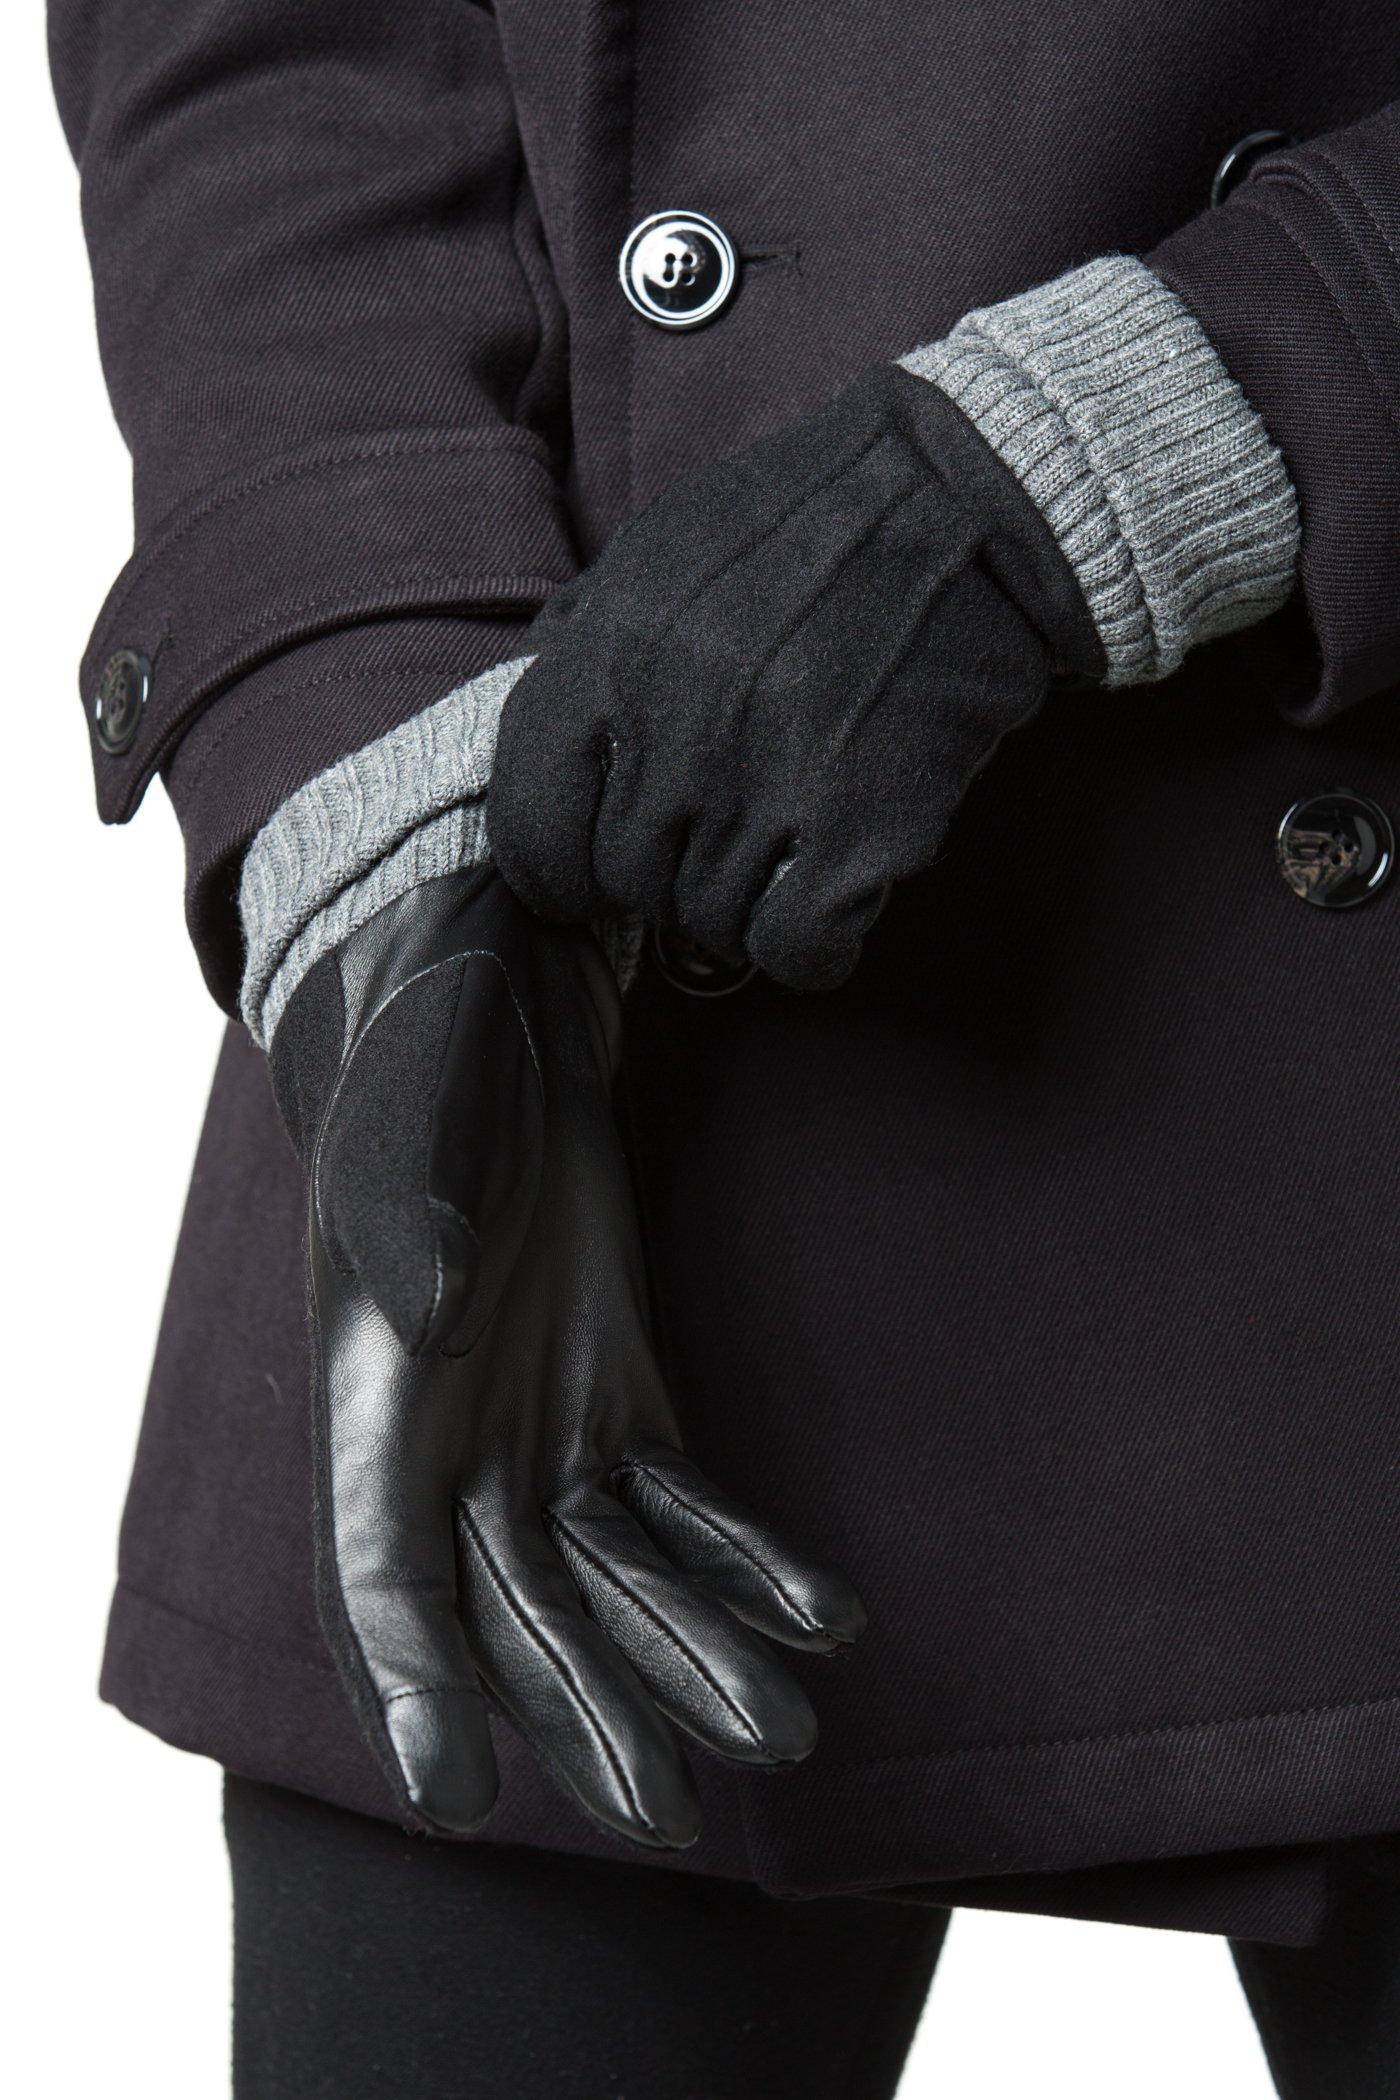 Gallery Seven Mens Warm Insulated Winter Glove - Cold Weather Texting Glove - Wrapped In A Gift BOX